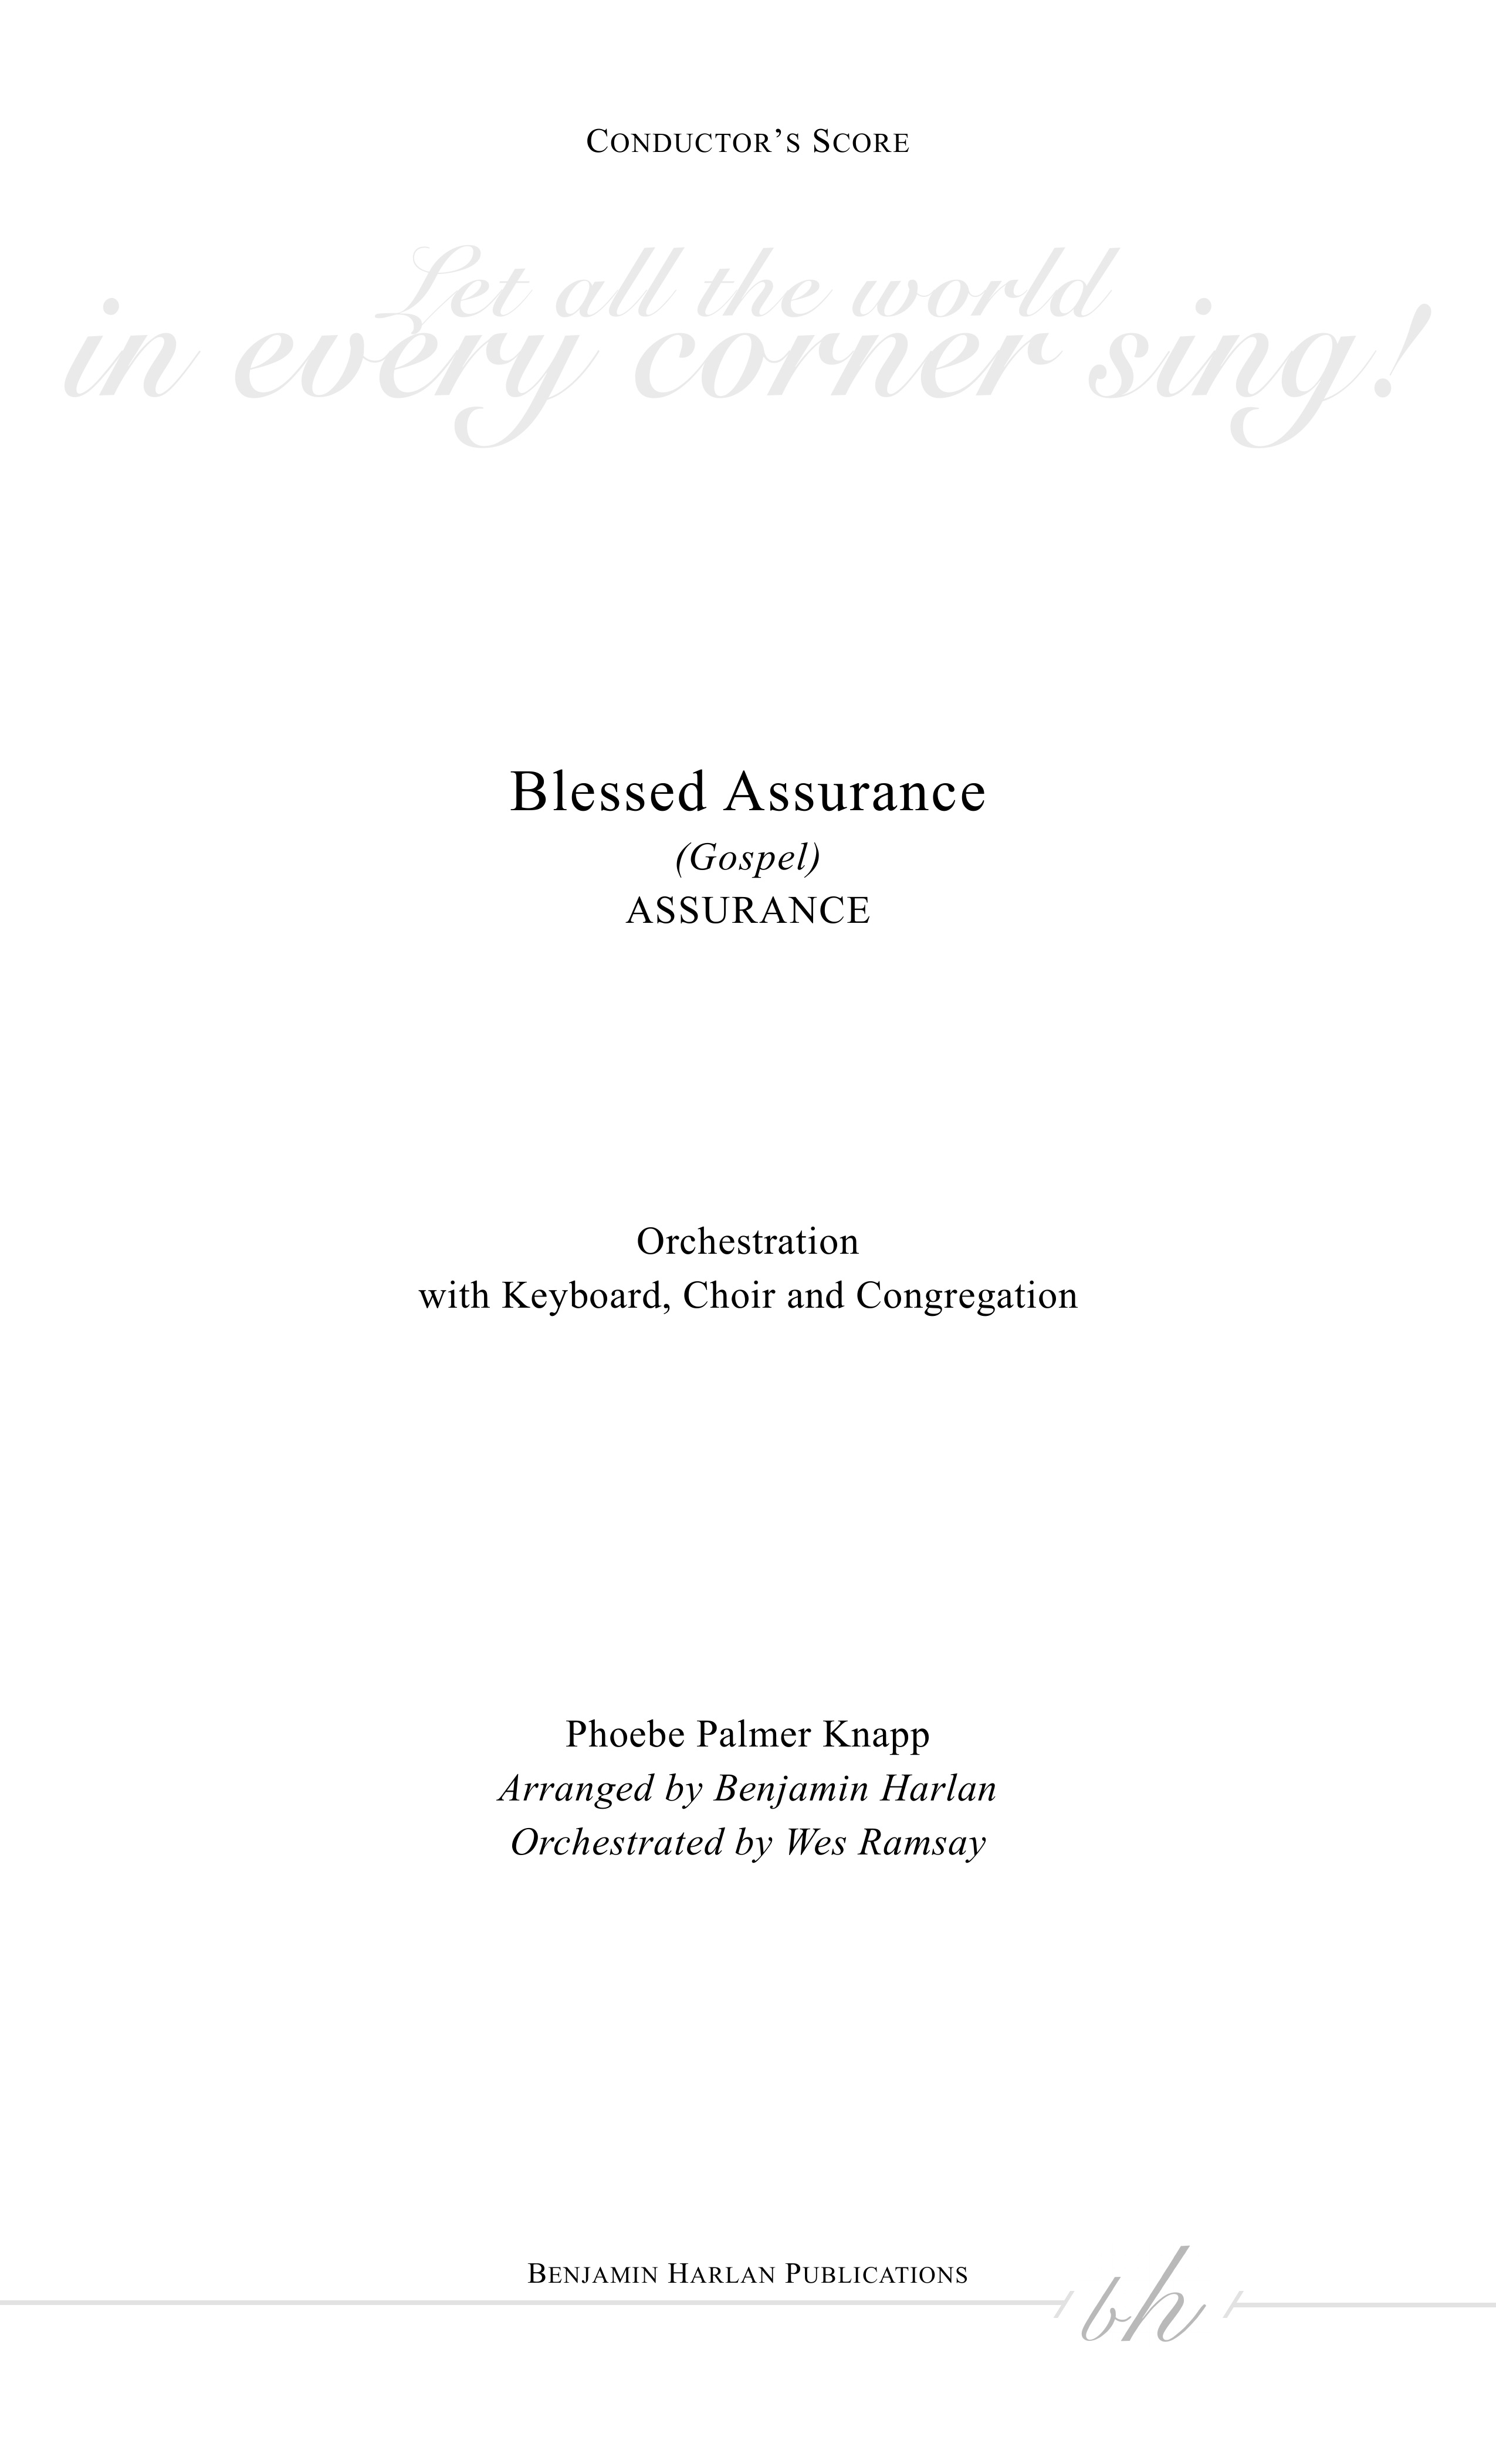 Blessed Assurance (Gospel) ORCH